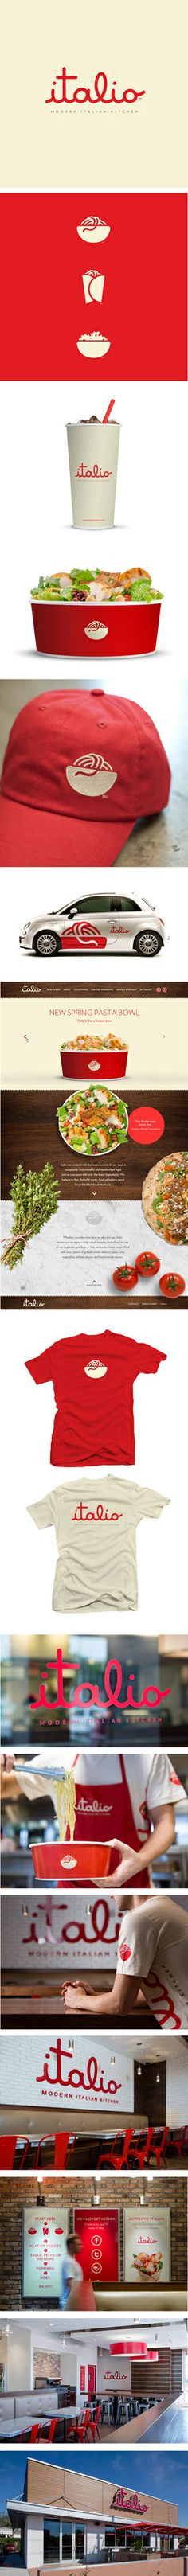 Italio Modern Kitchen Identity and Collateral | Designer: Push